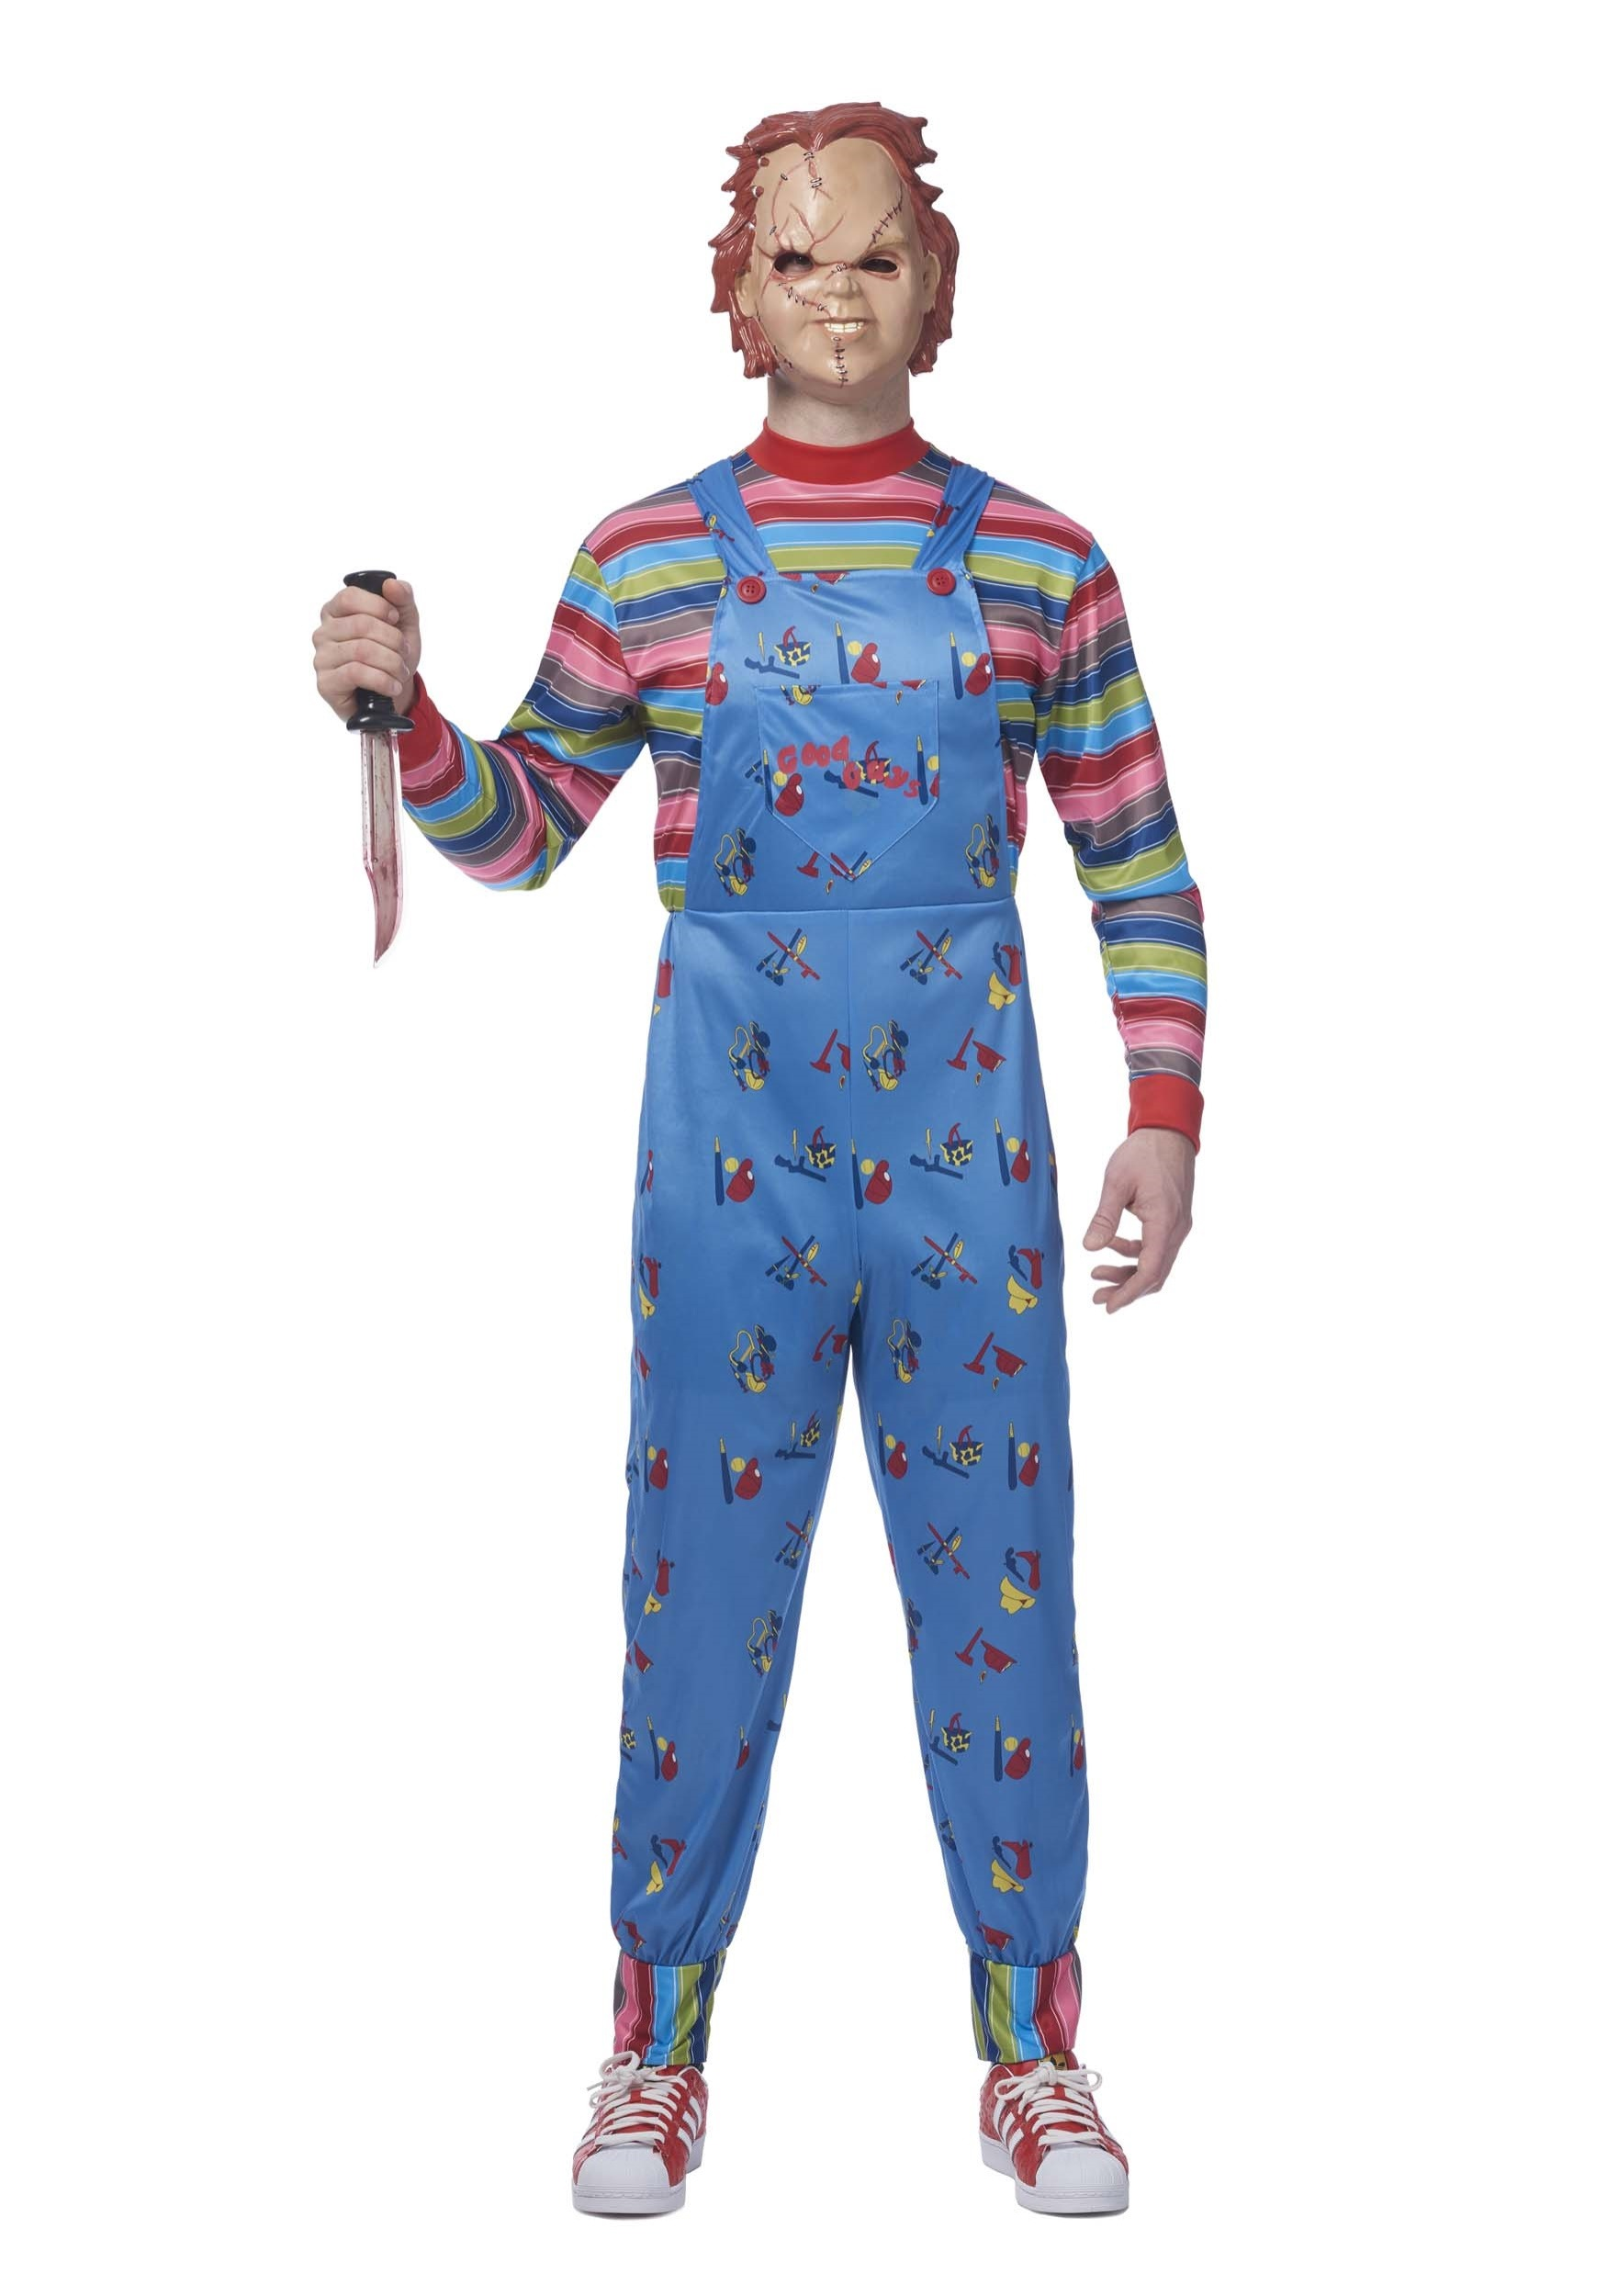 Chucky costume for adults adult chucky costume solutioingenieria Choice Image